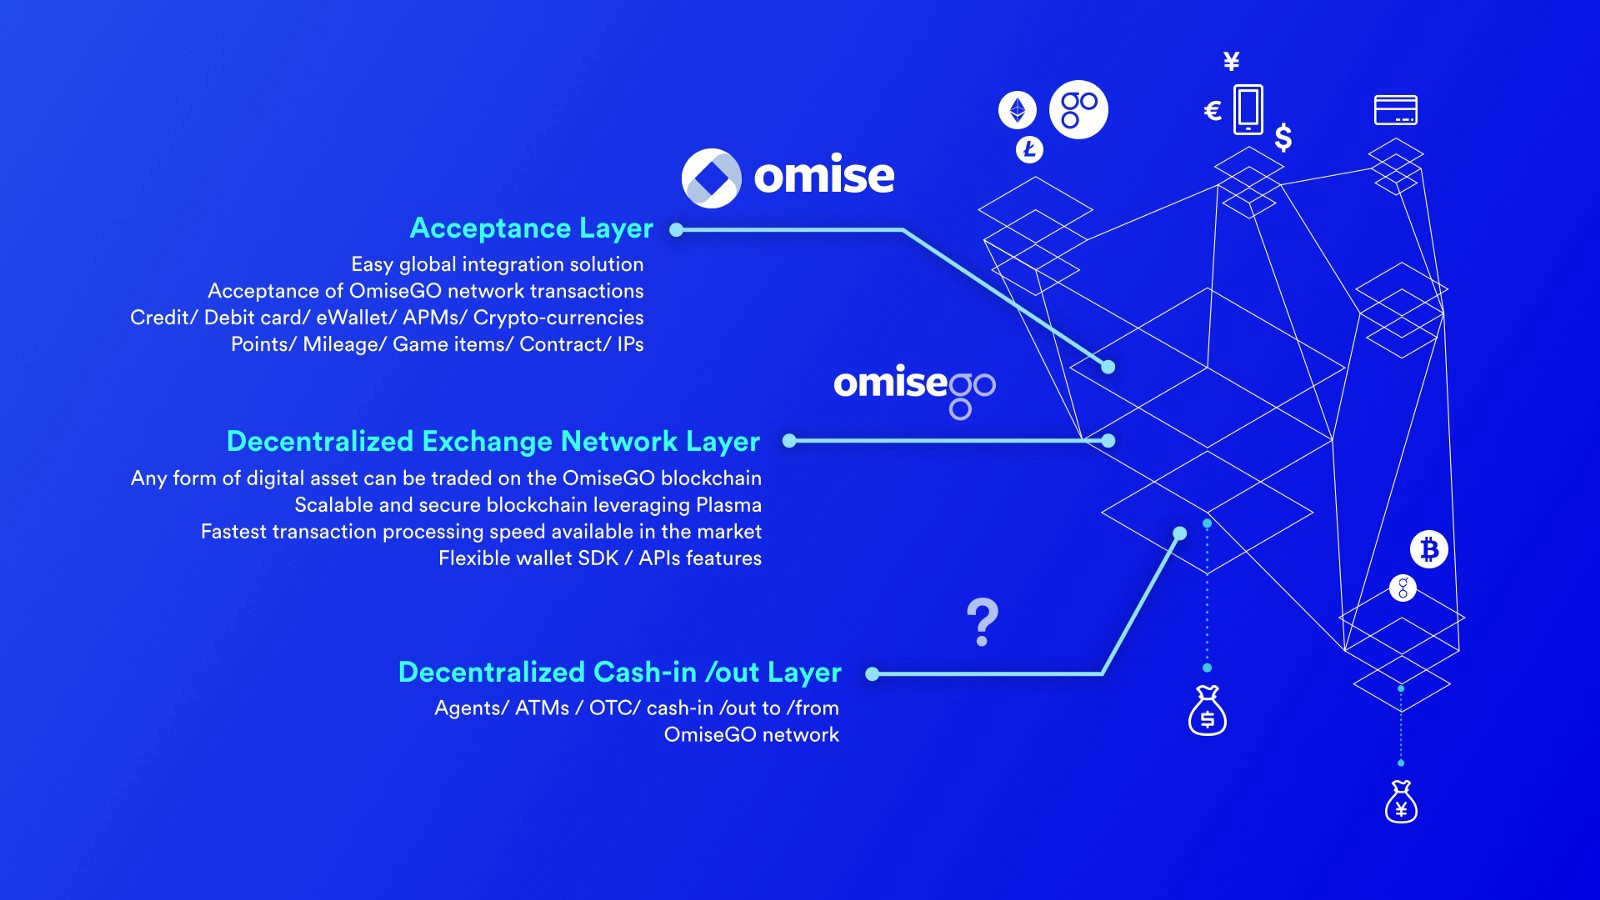 omisego purpose